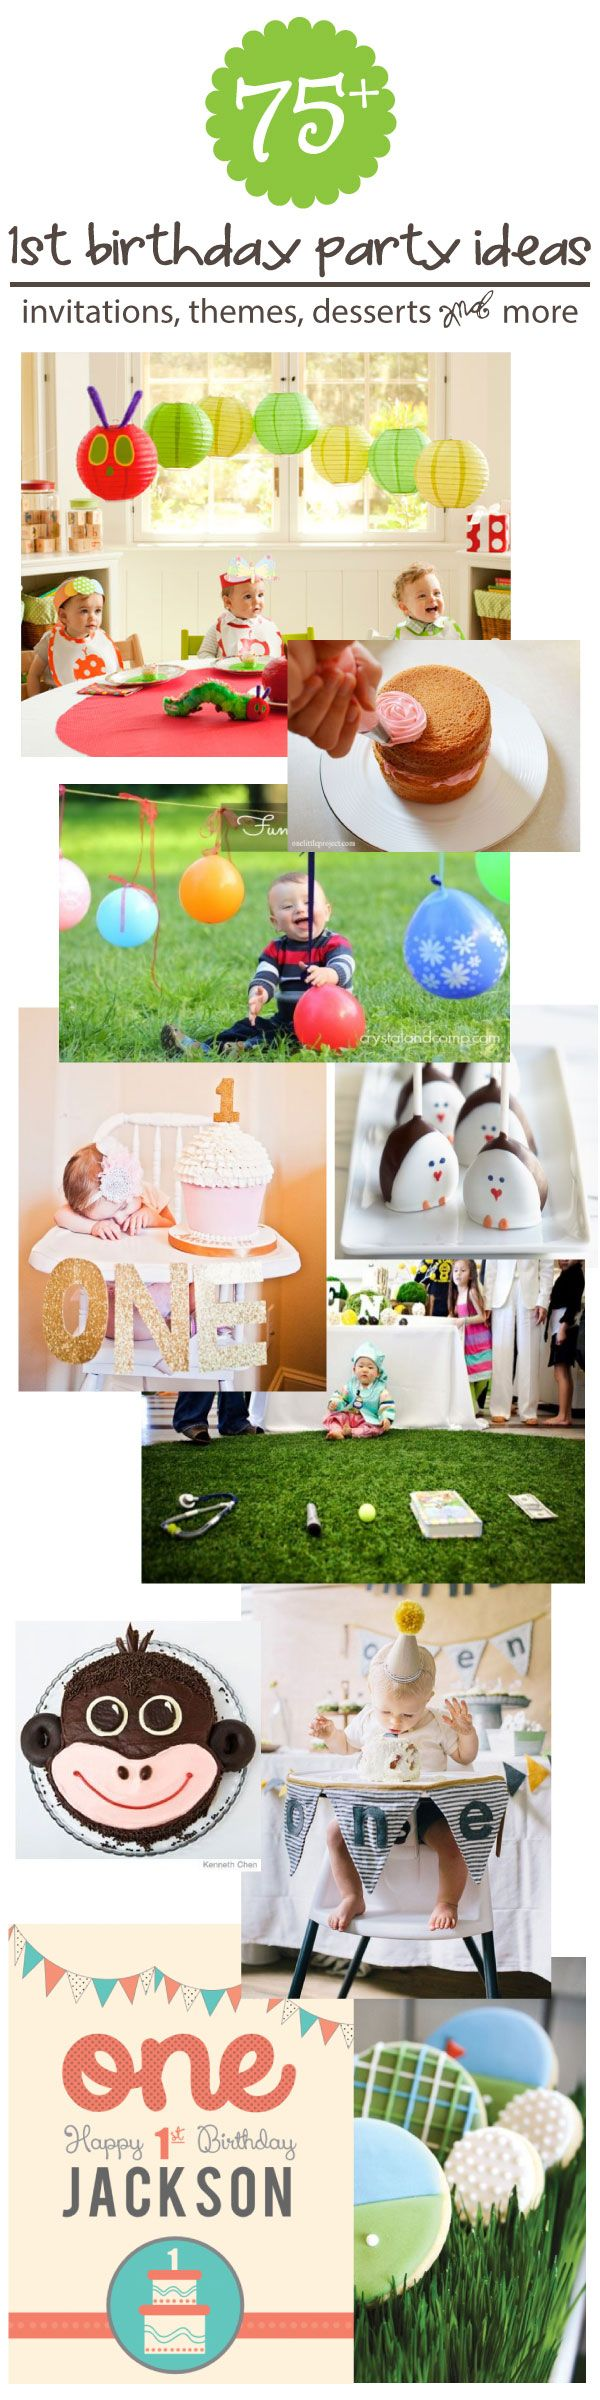 75+ First Birthday Party Ideas, Themes, Games and More!   www.signs.com #birthdays